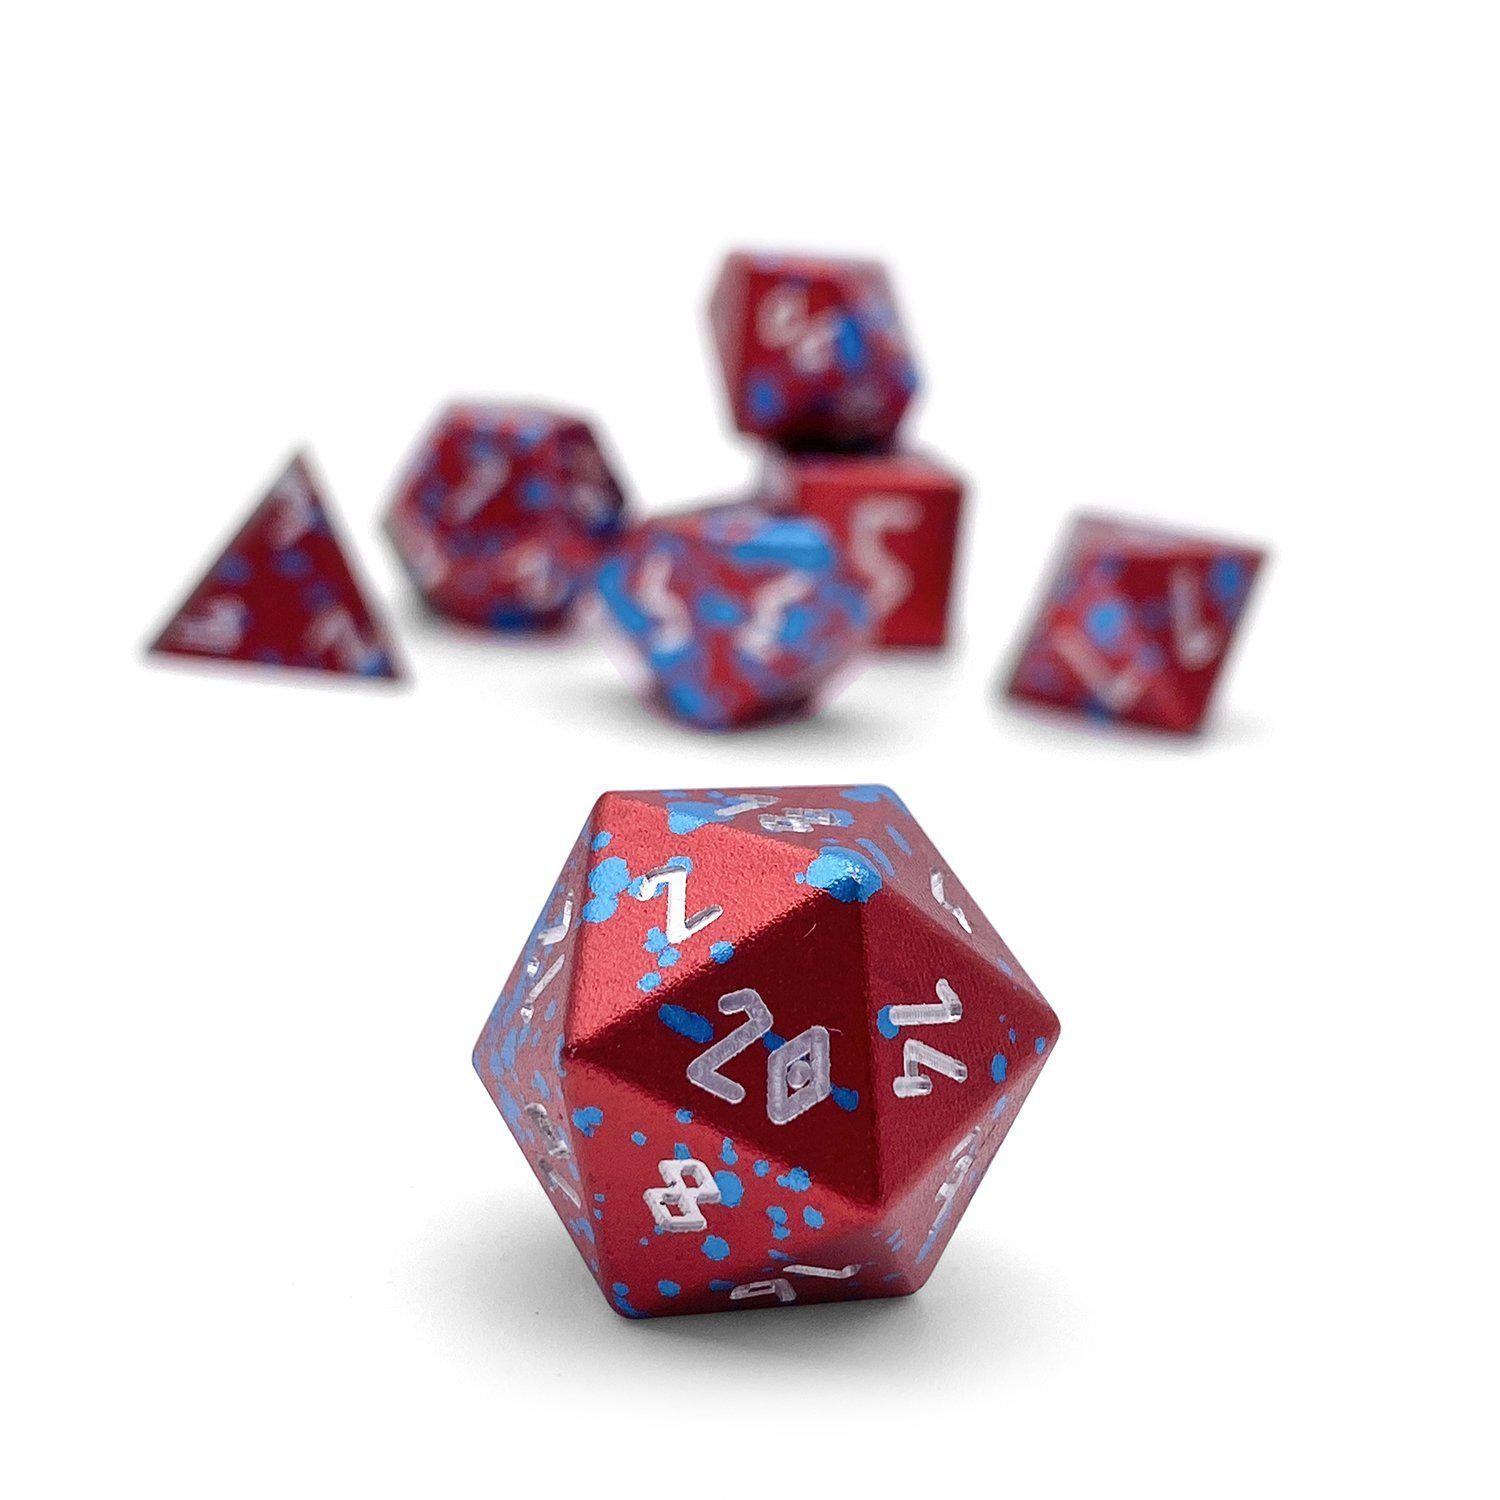 Old Glory Wondrous Dice Set Of 7 Rpg Dice Norse Font By Norse Foundr Norse Foundry The foundry, also known as the forge, is a colossal manufacturing facility located at the heart of foundry (location). old glory wondrous dice set of 7 rpg dice norse font by norse foundry precision polyhedral dice set